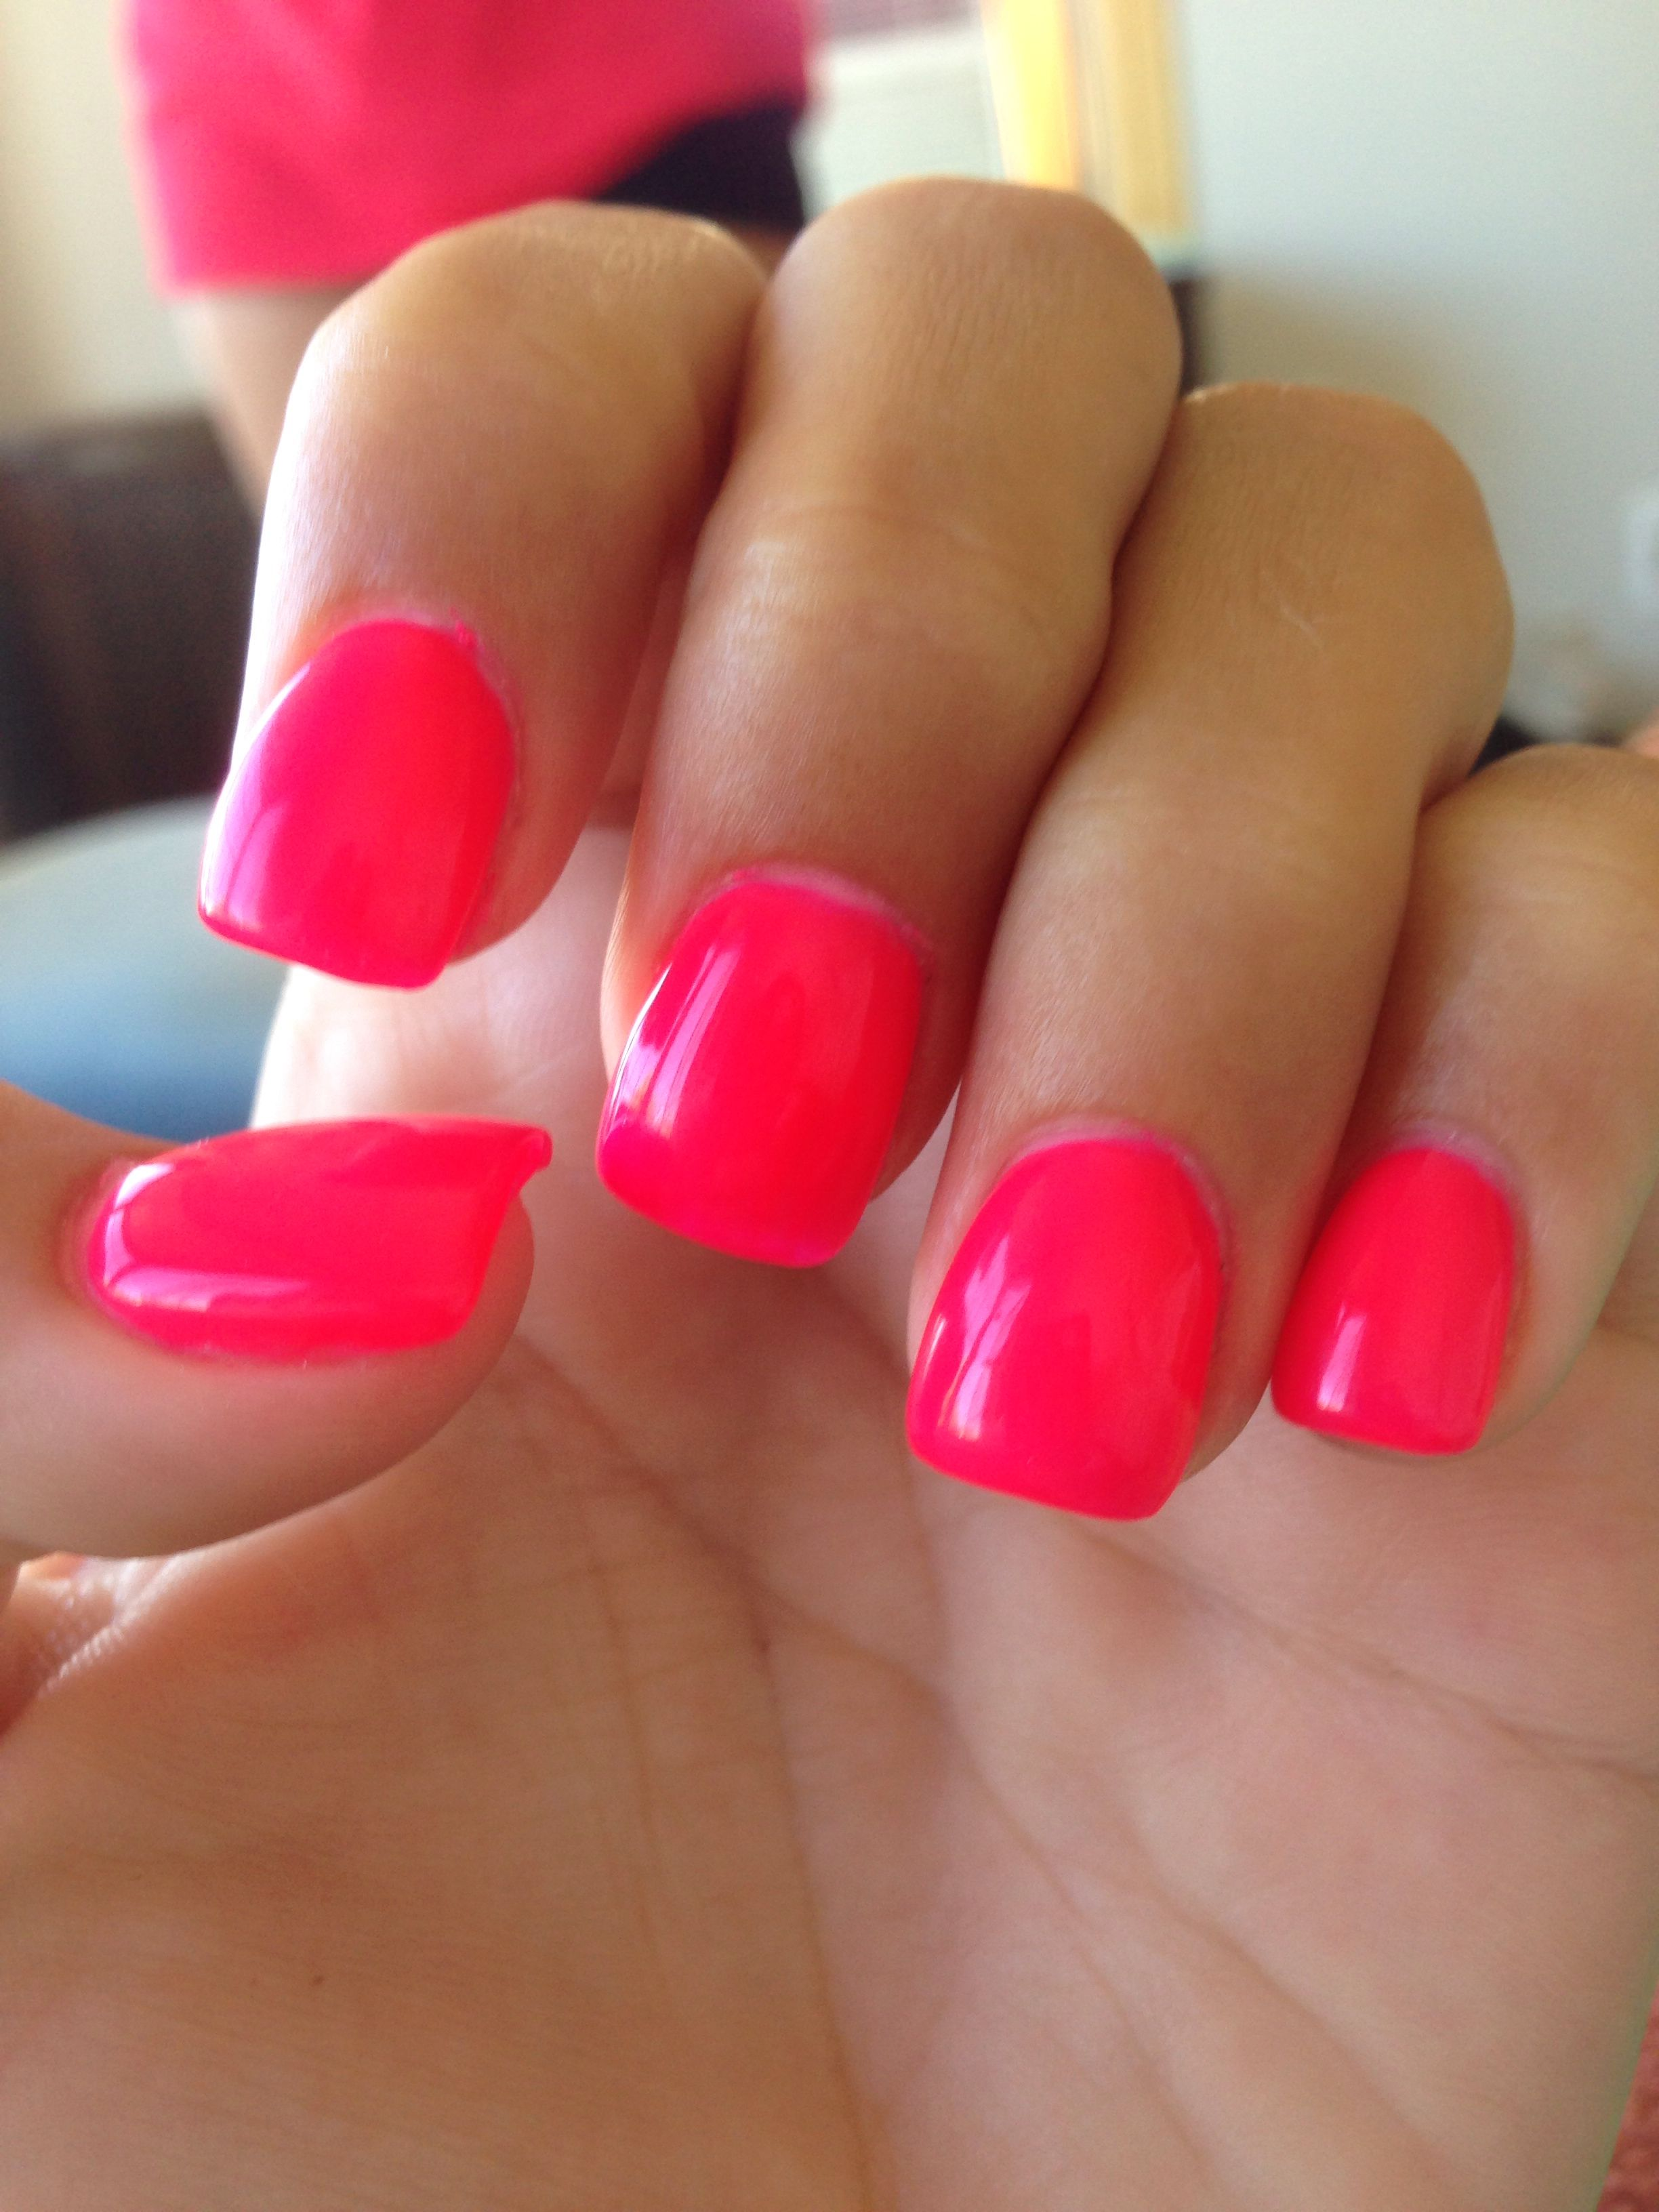 hot pink nails #summer #love #nails